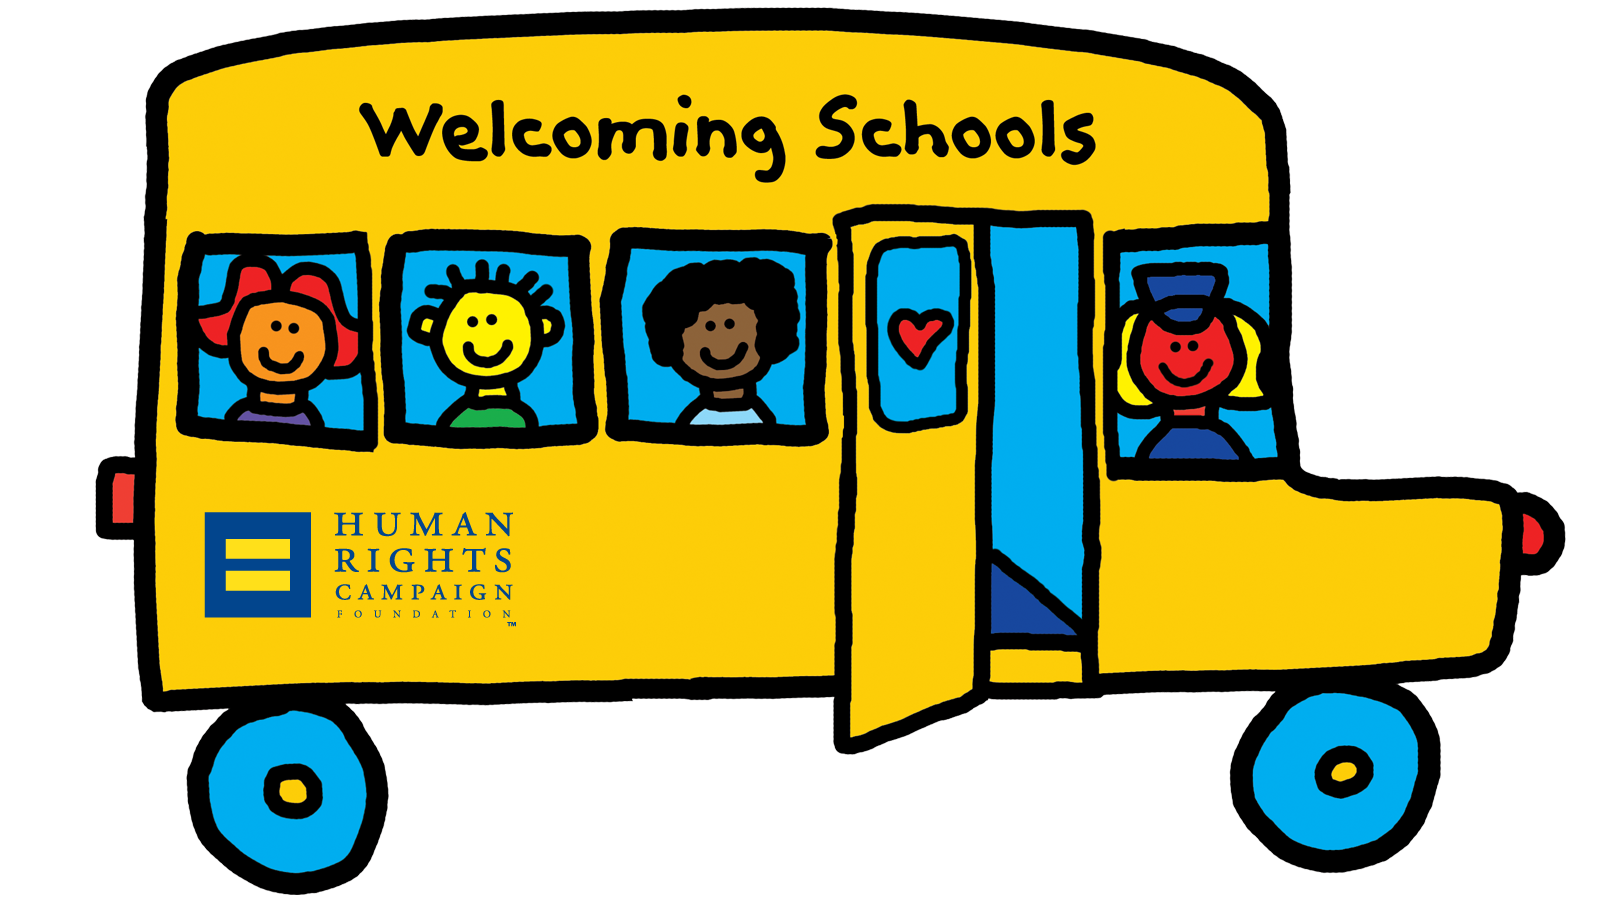 Welcoming Schools Wednesdays: Activities and Resources for Inclusive Learning at Home